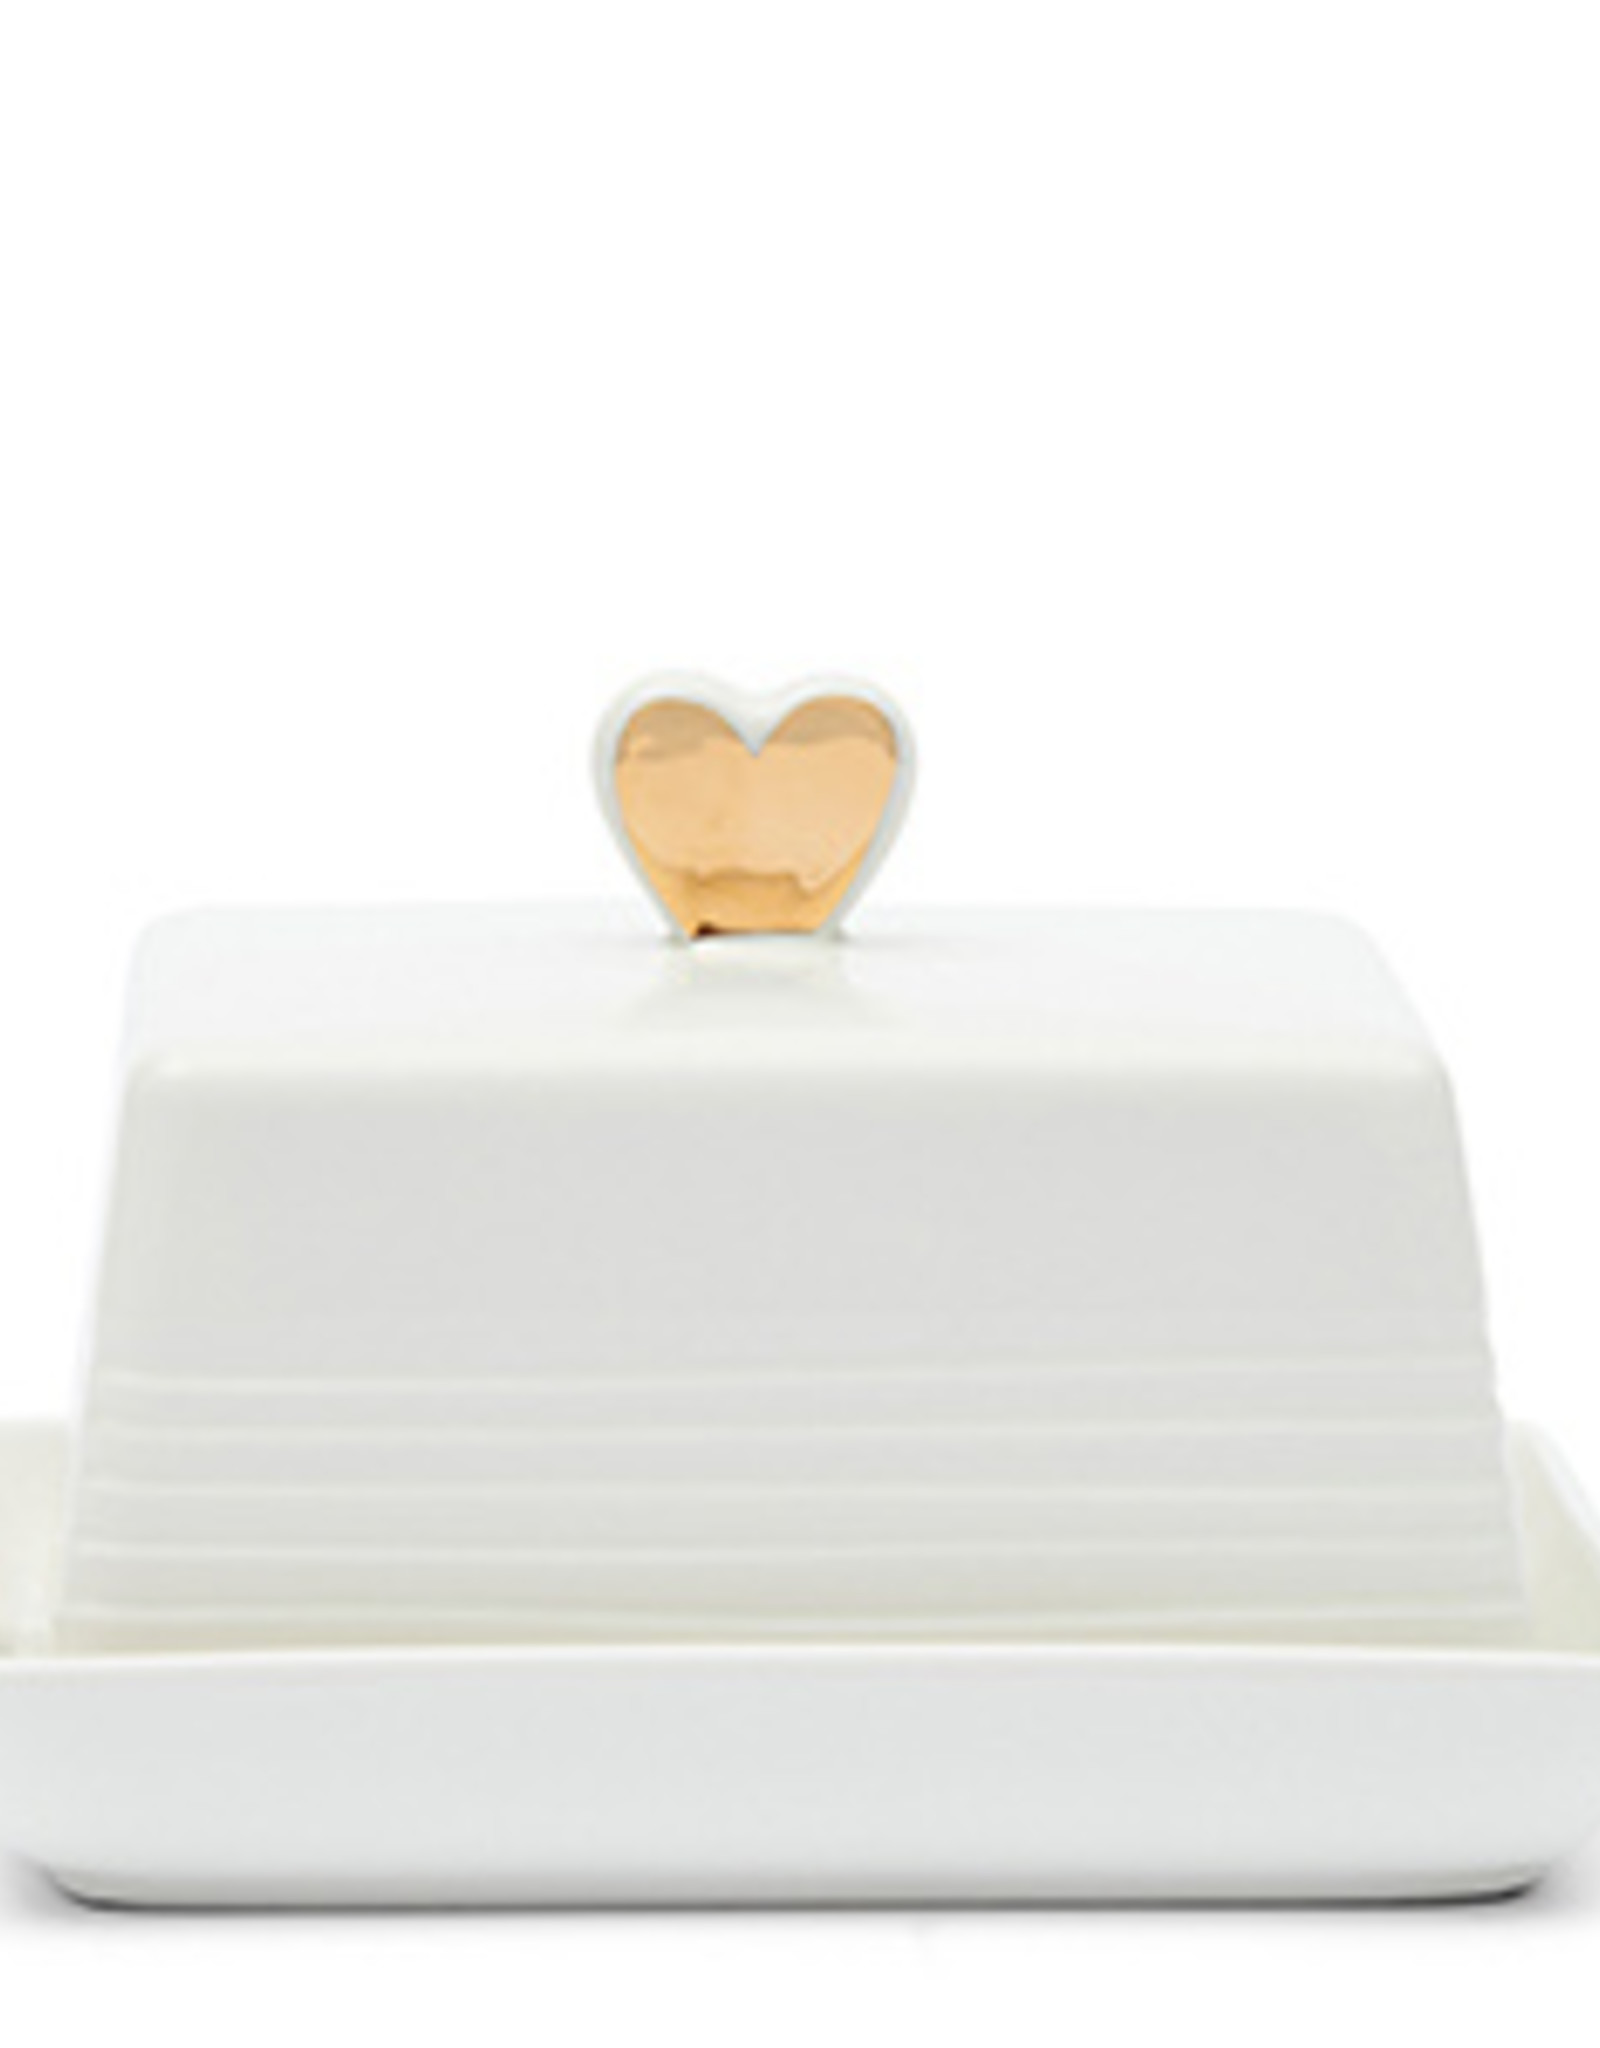 Riviera Maison Food Lovers Butter Dish